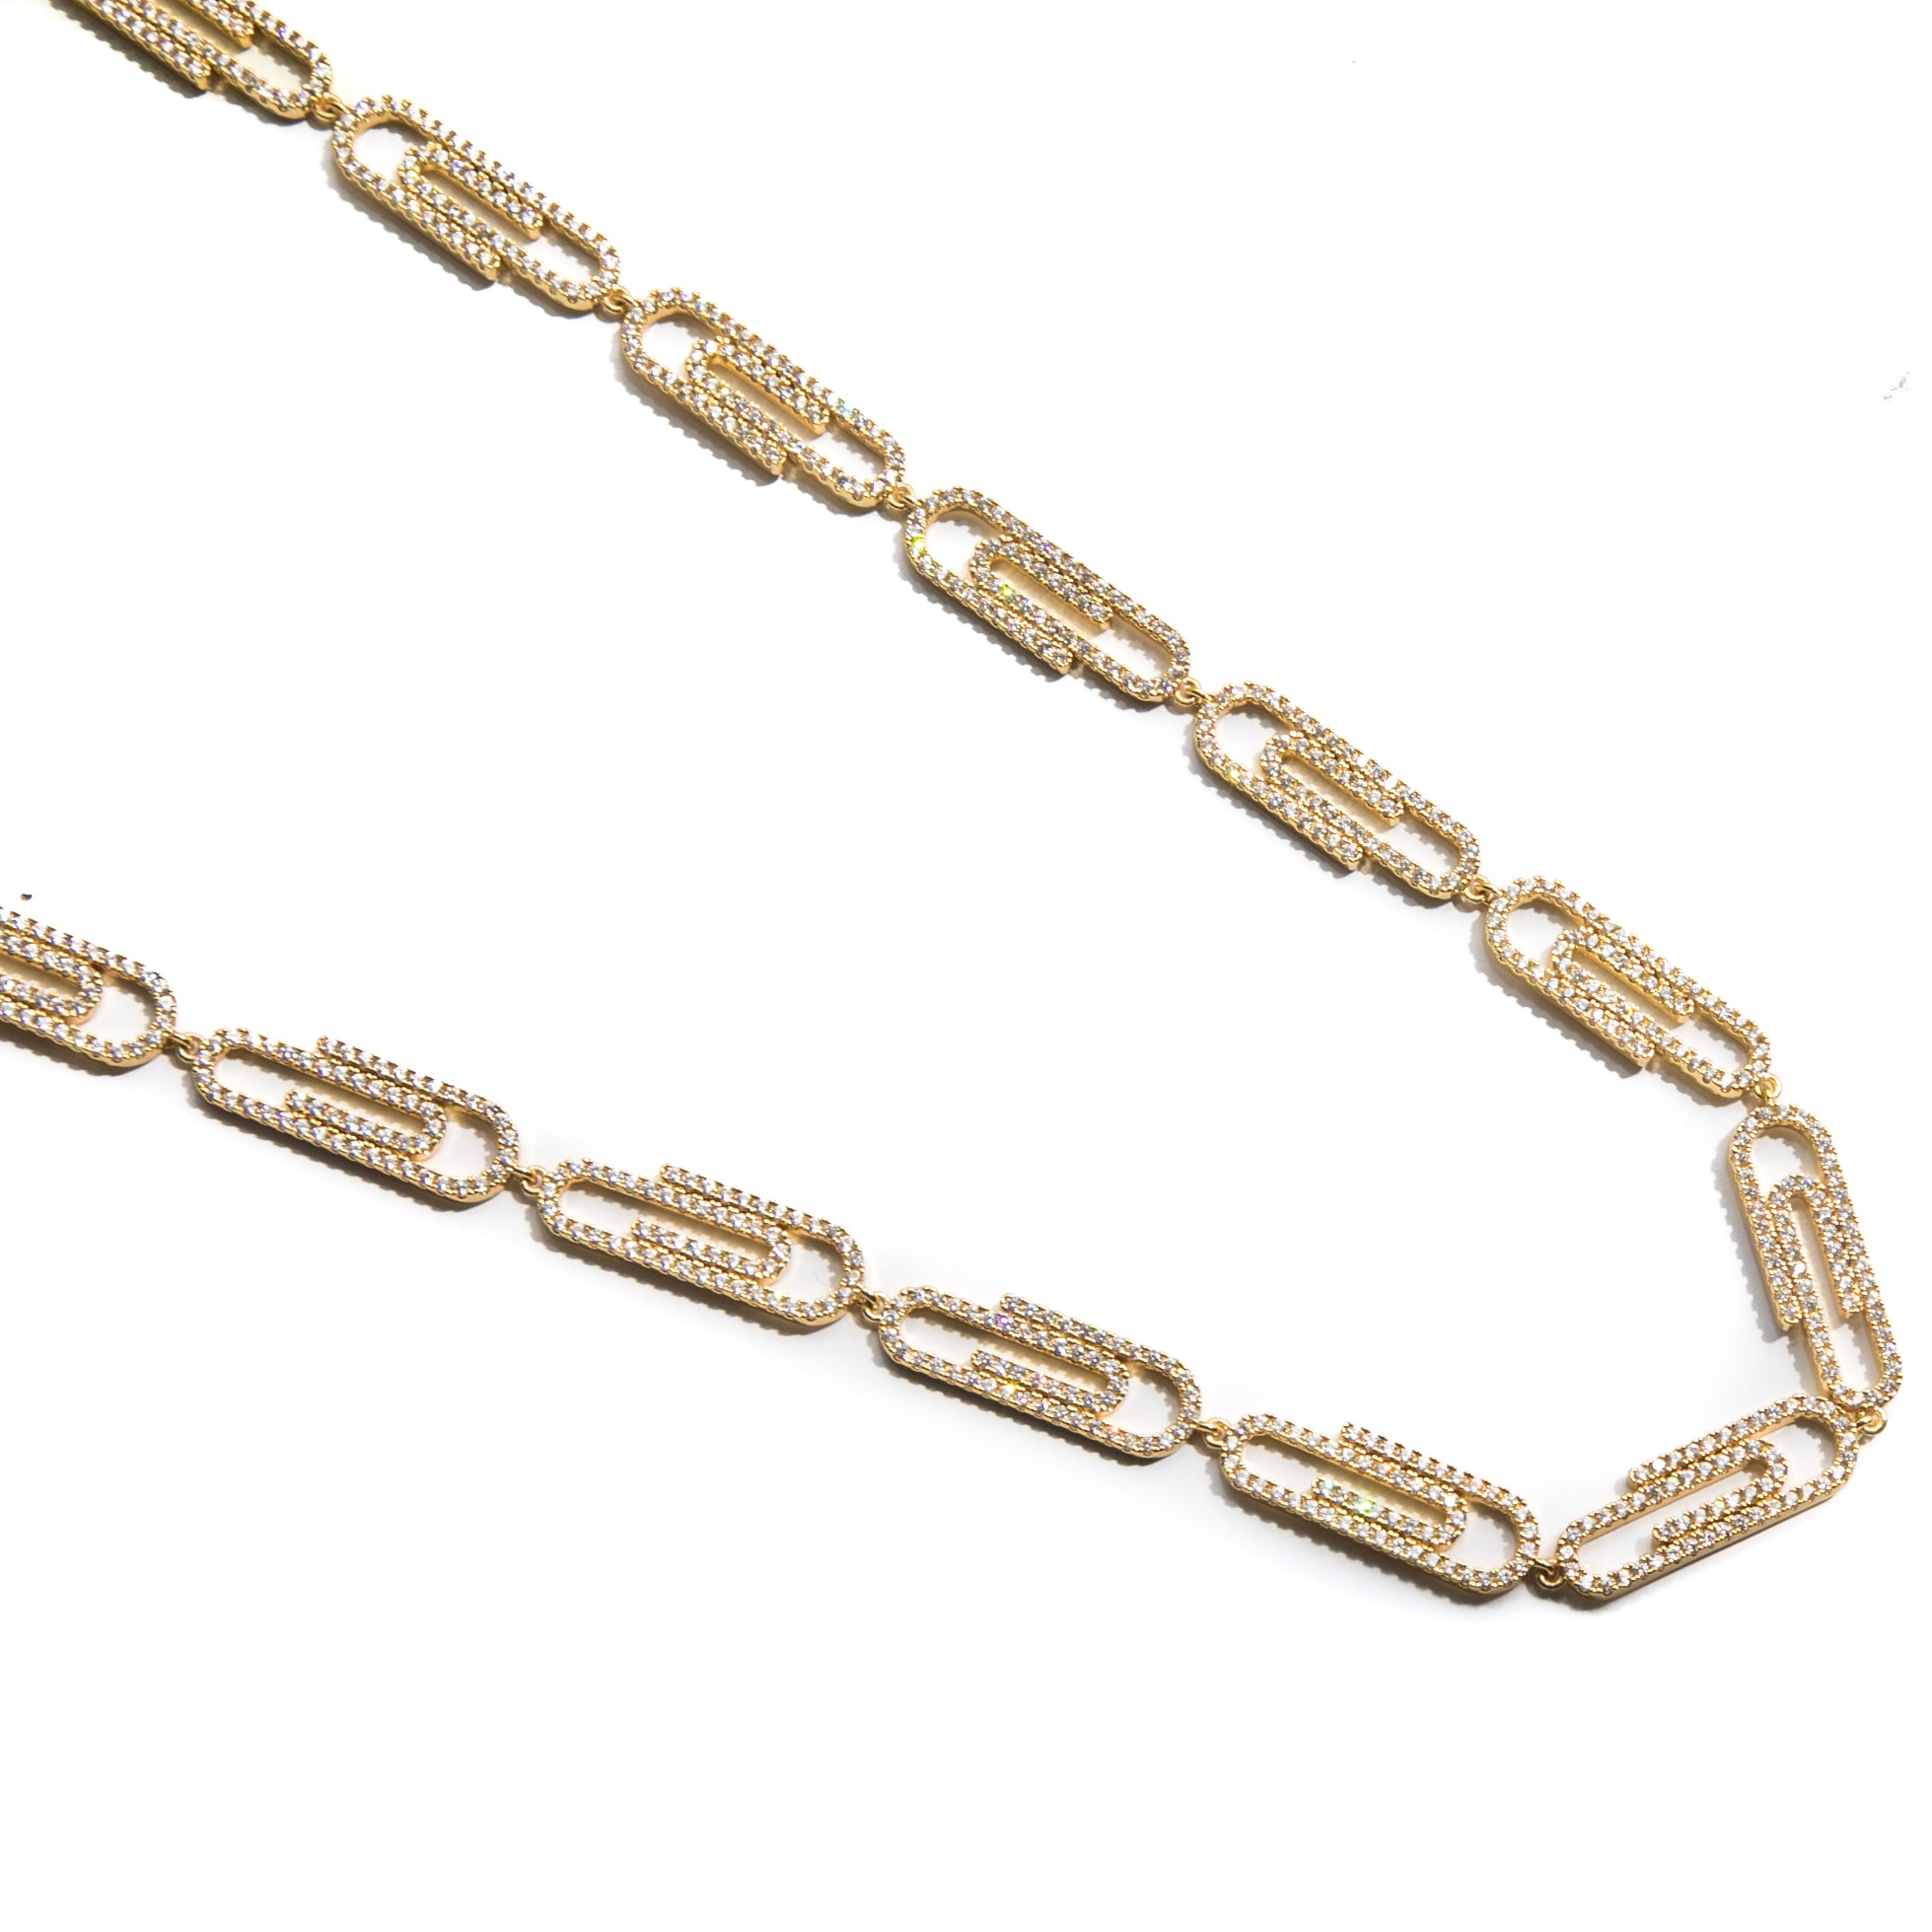 Paper Clip Necklace - ACCESSORIES, Golden Gilt, SNEAKER STUDIO, GOLDEN GILT, DESIGN BY TSS